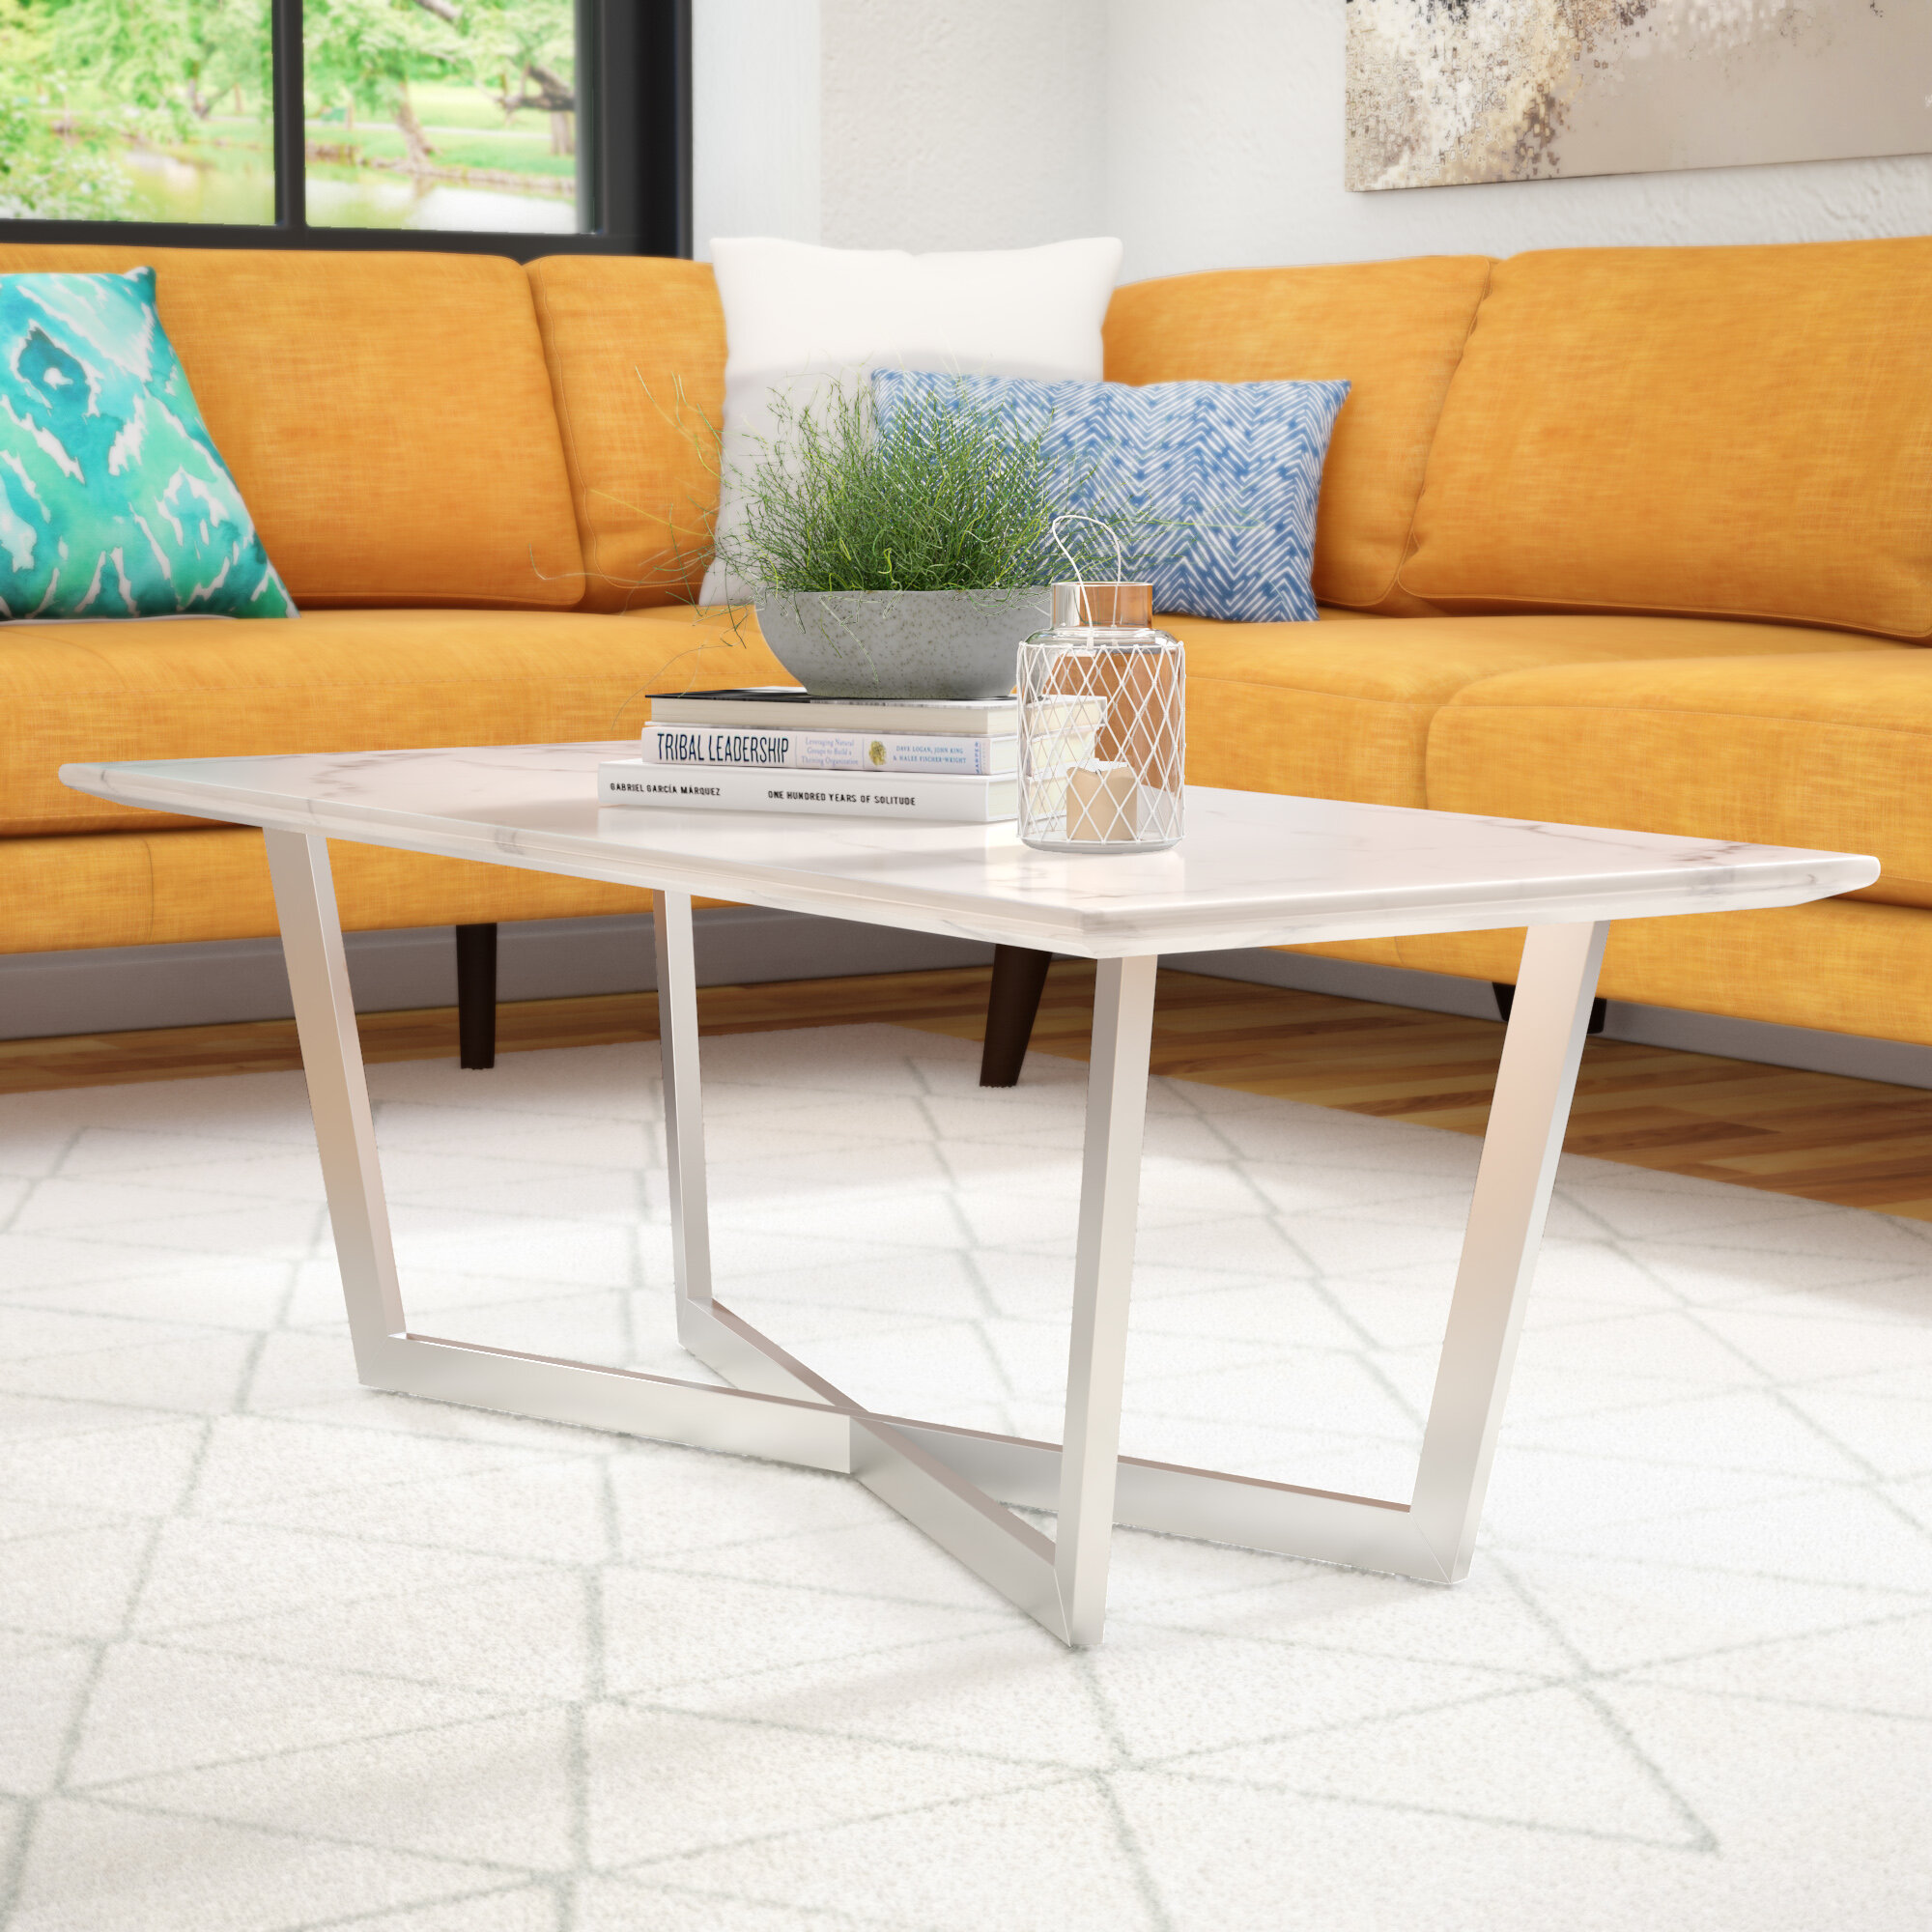 Groovy Rosenbalm Faux Marble Coffee Table Caraccident5 Cool Chair Designs And Ideas Caraccident5Info